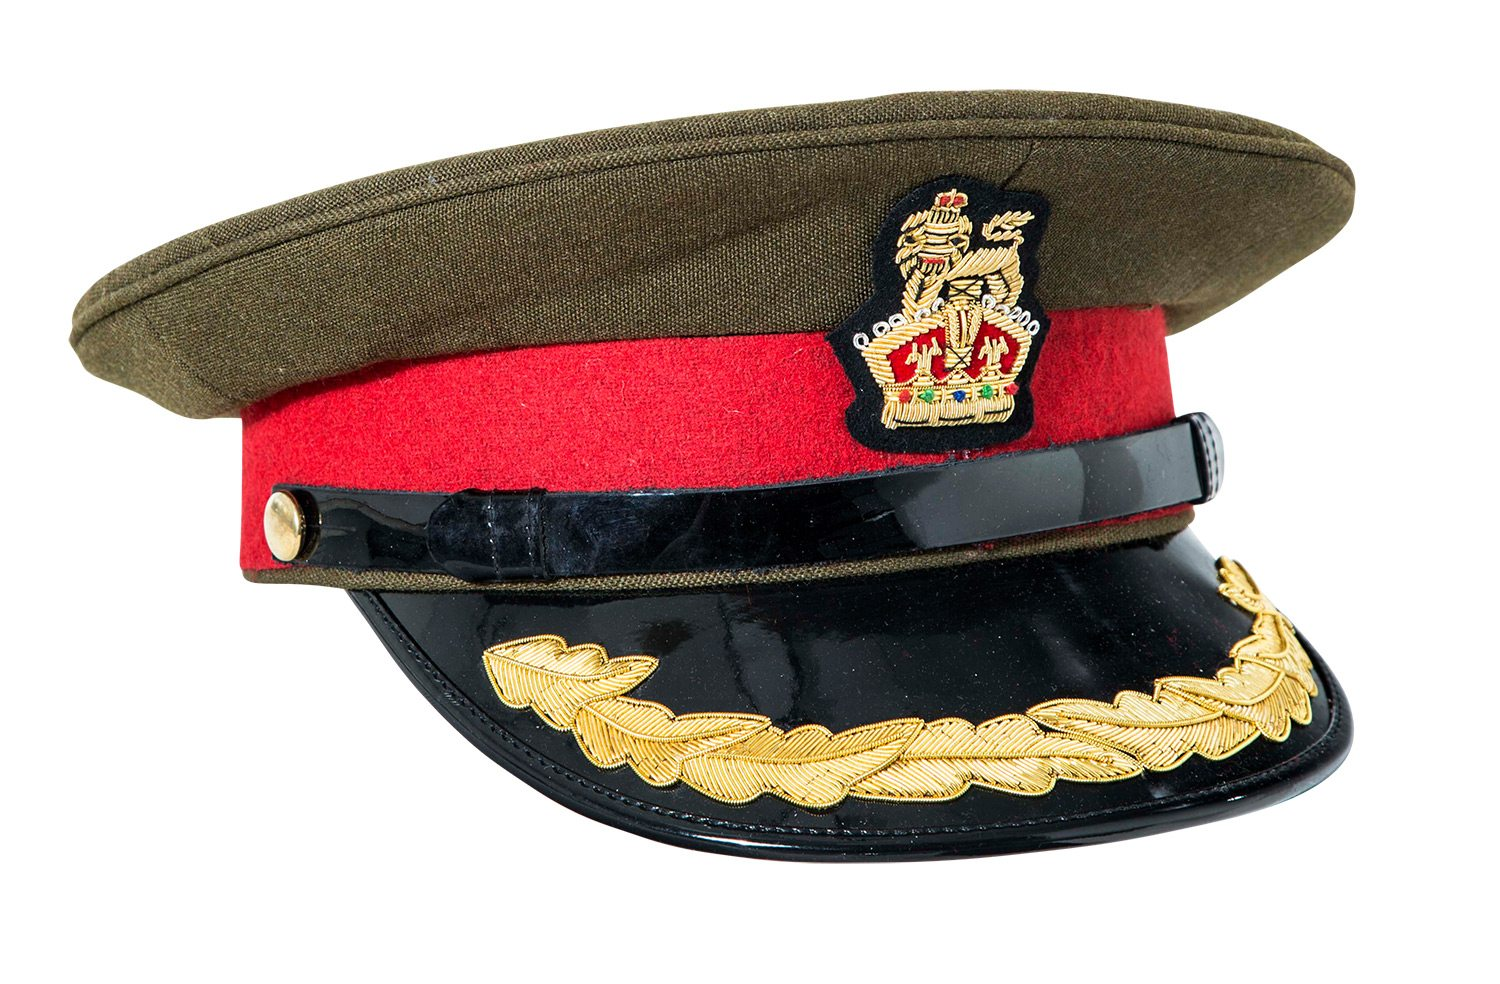 WW1 WW2 British army Colonel visor cap  b860078921b